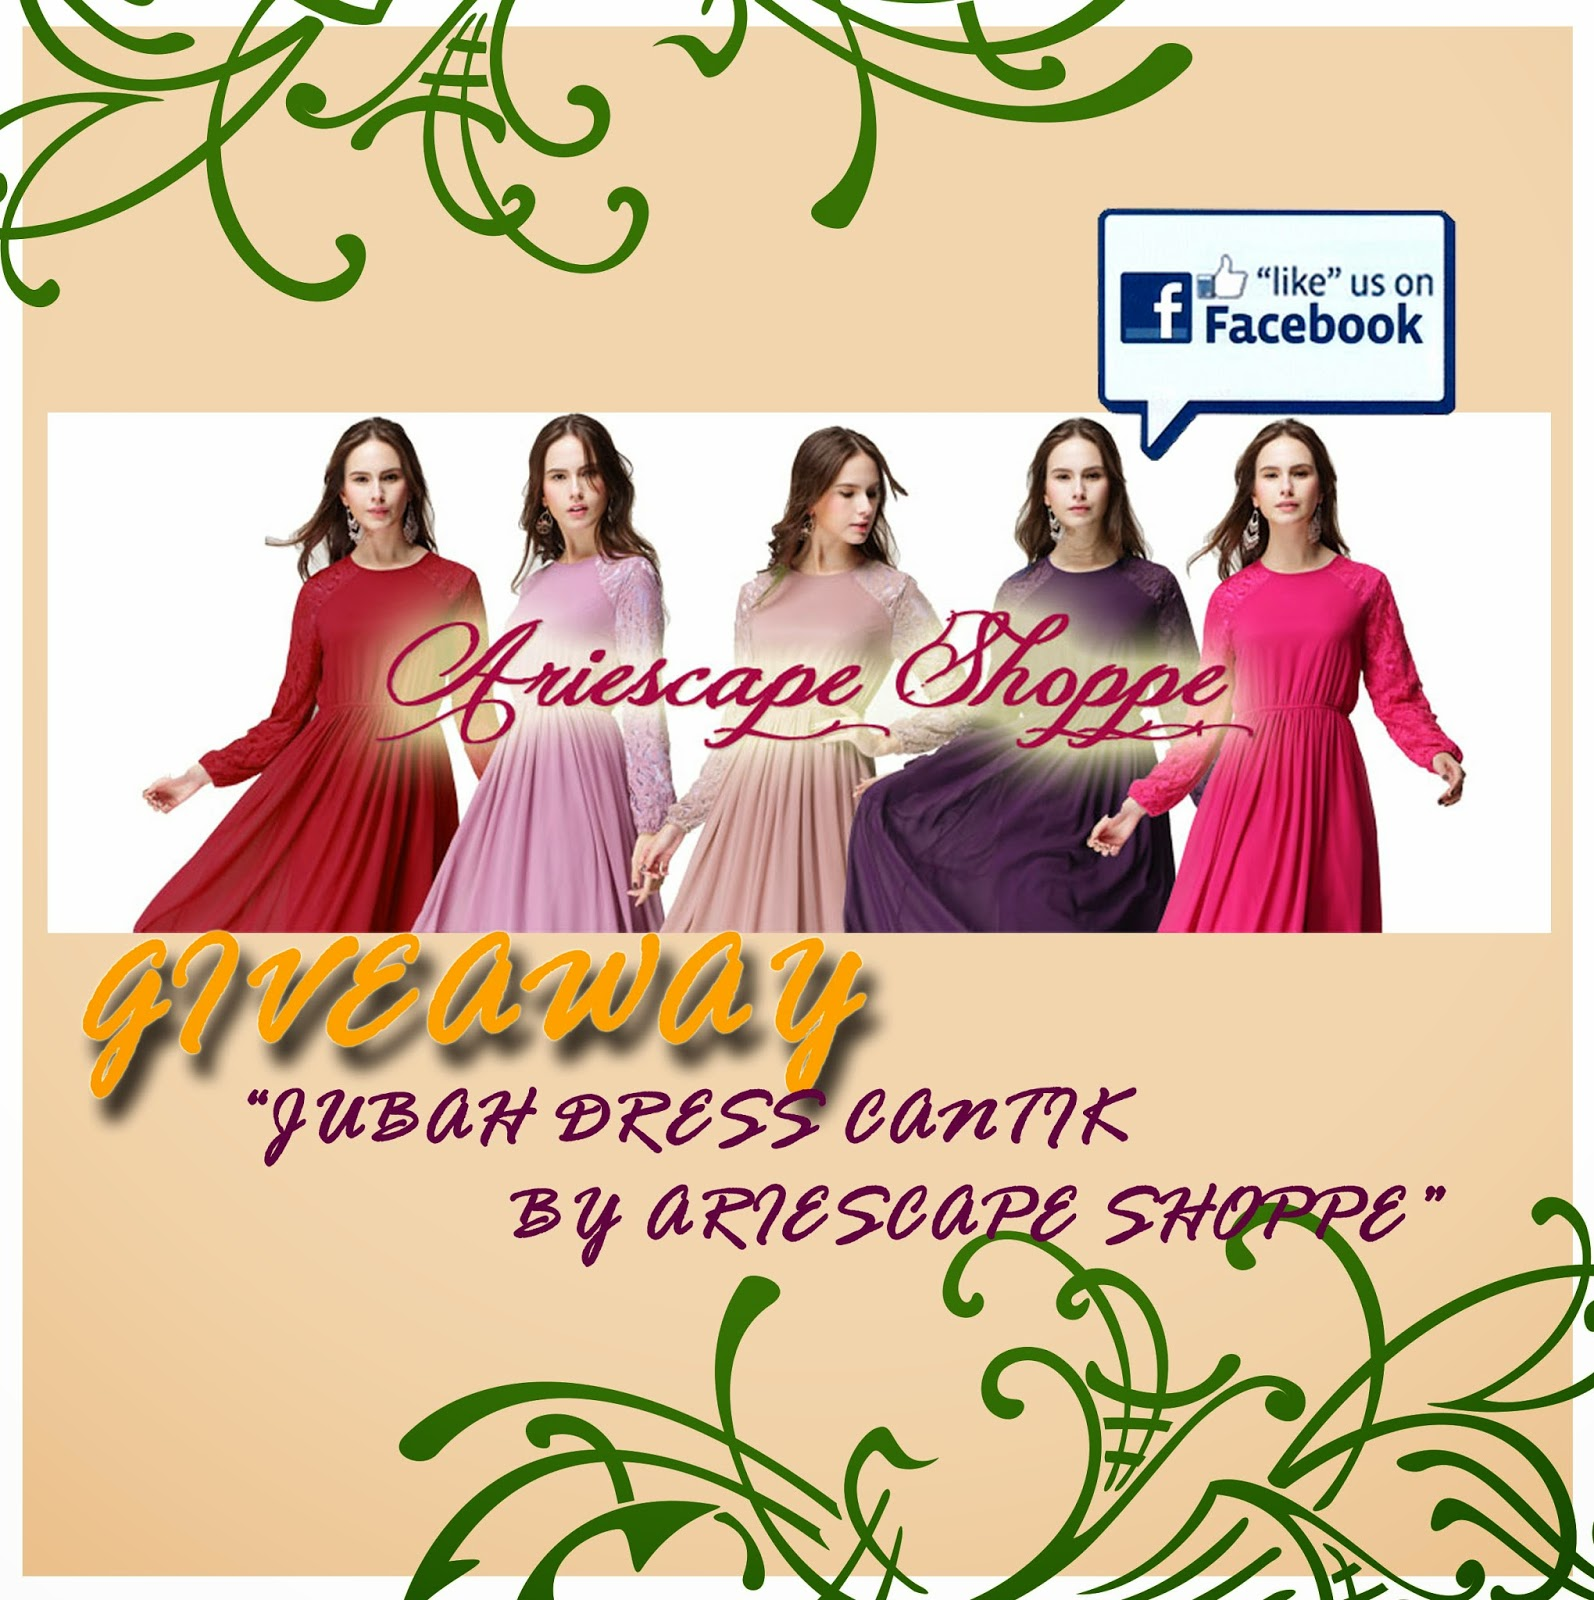 giveaway jubah dress cantik